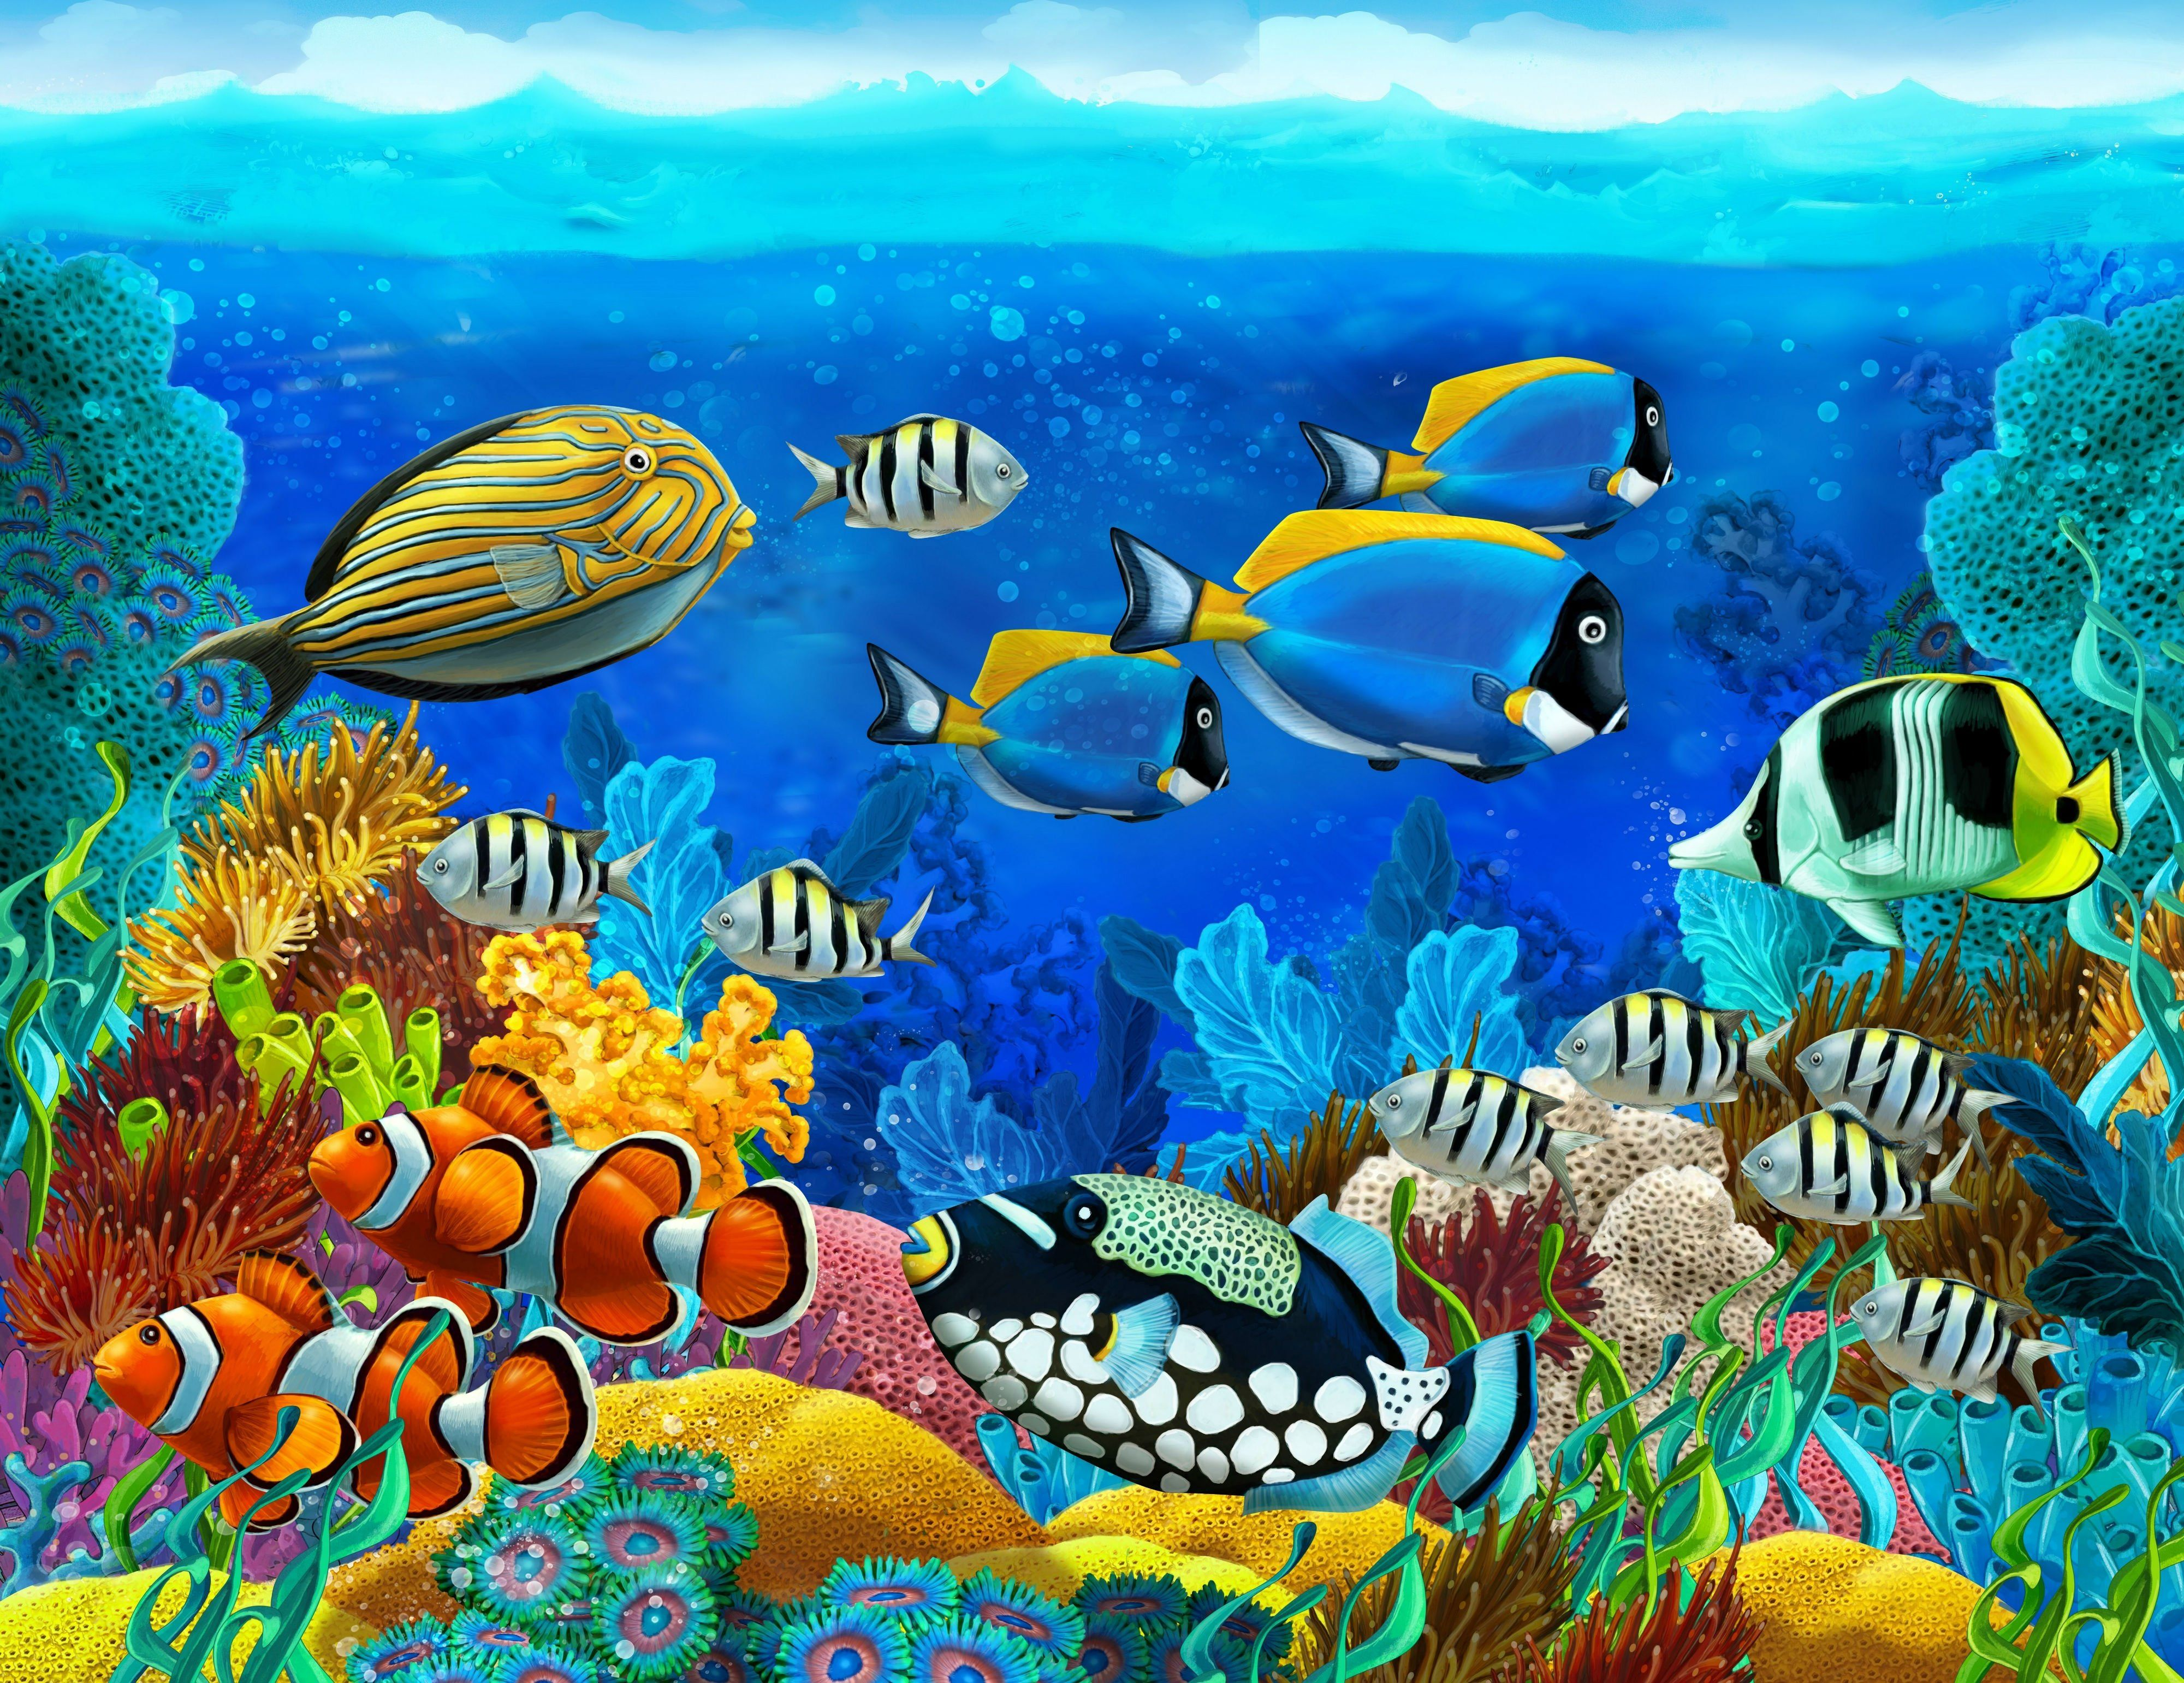 Underwater Fish Wallpaper Underwater Wallpaper